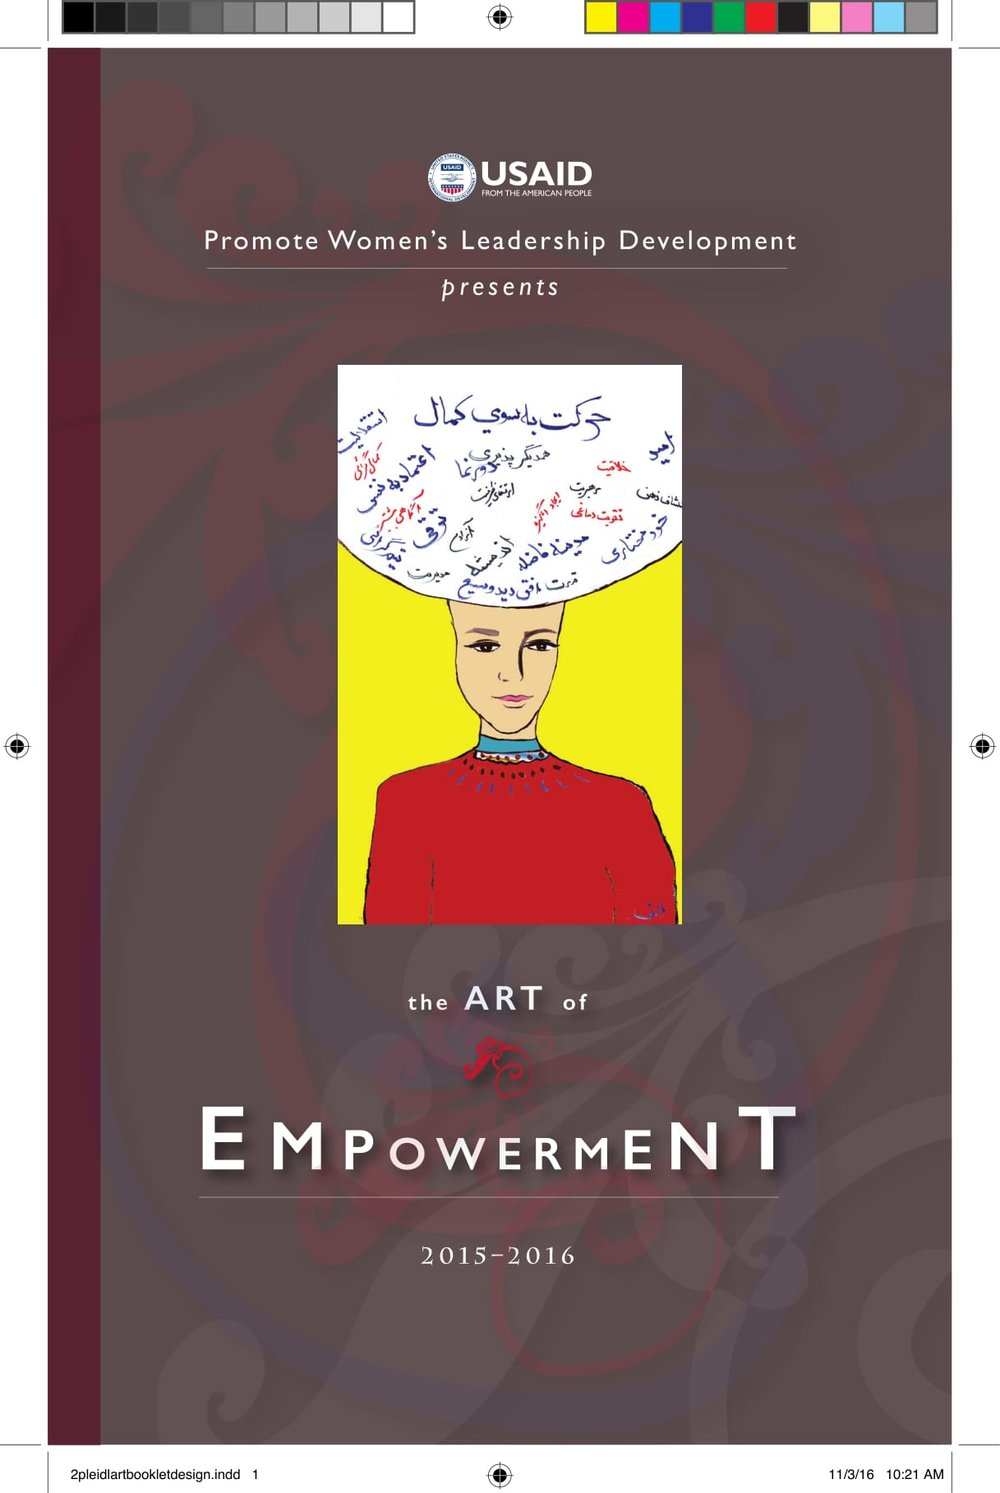 USAID Promote The Art of Empowerment